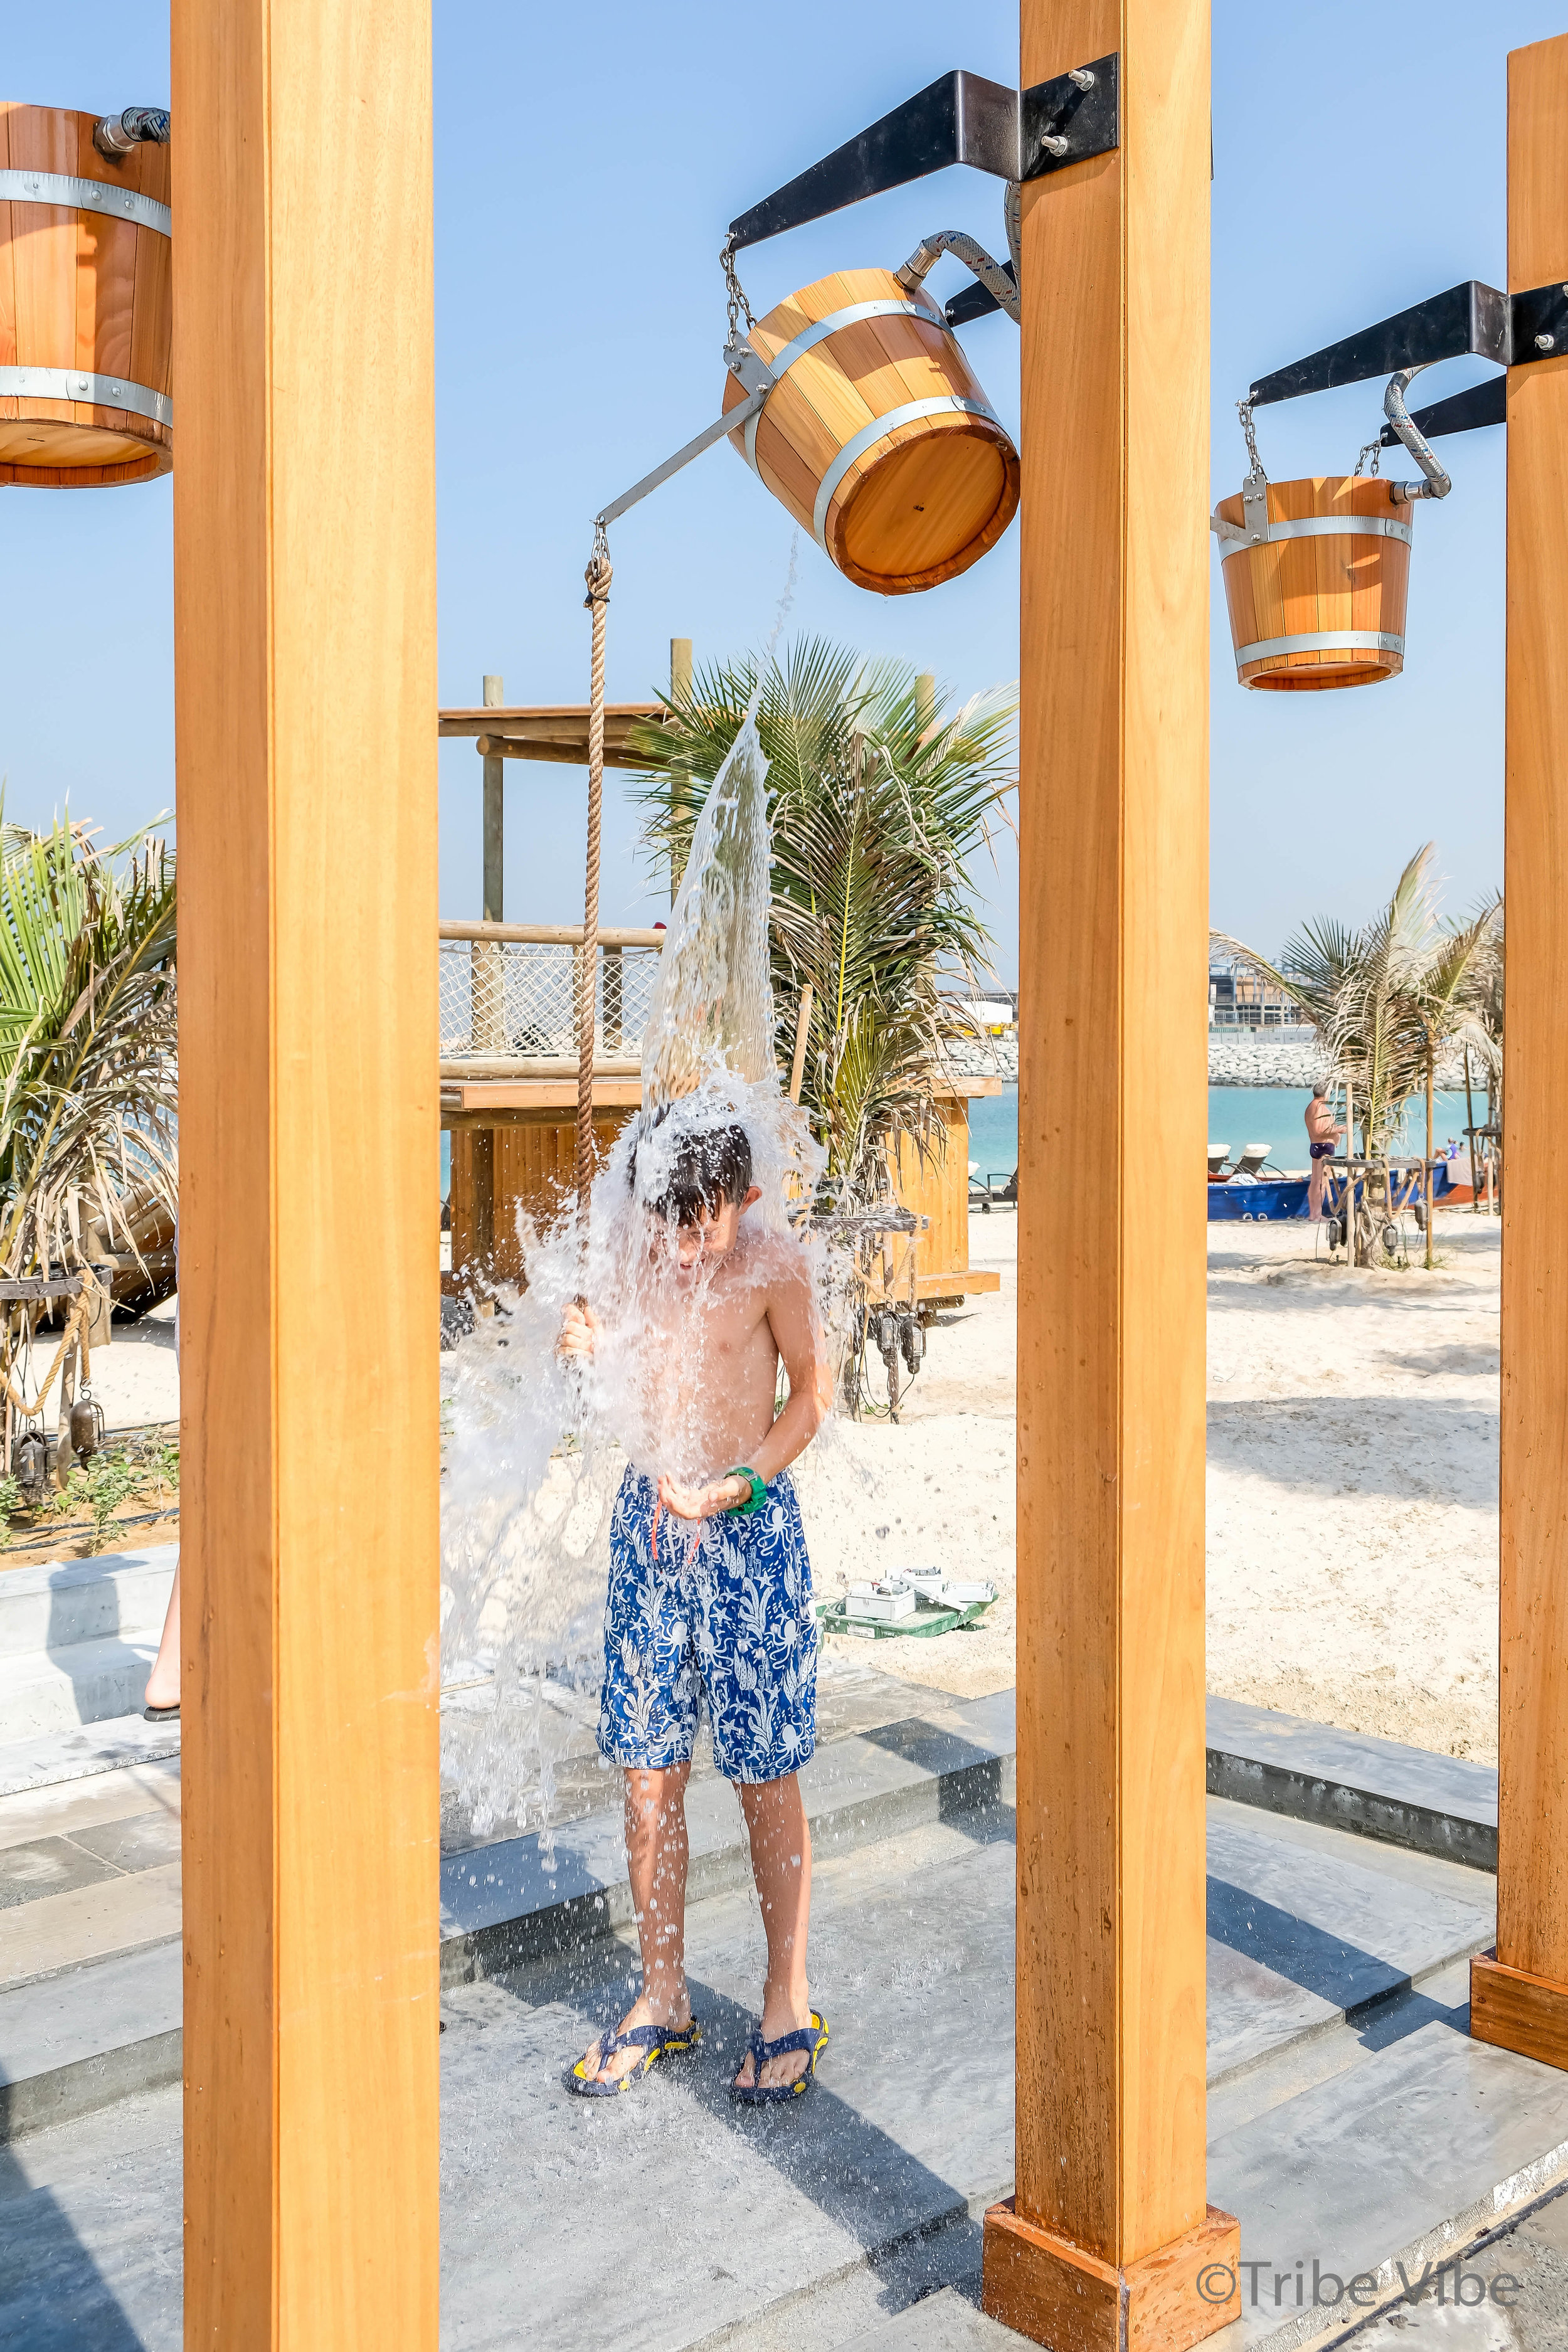 bucket showers at La Mer Dubai1.jpg